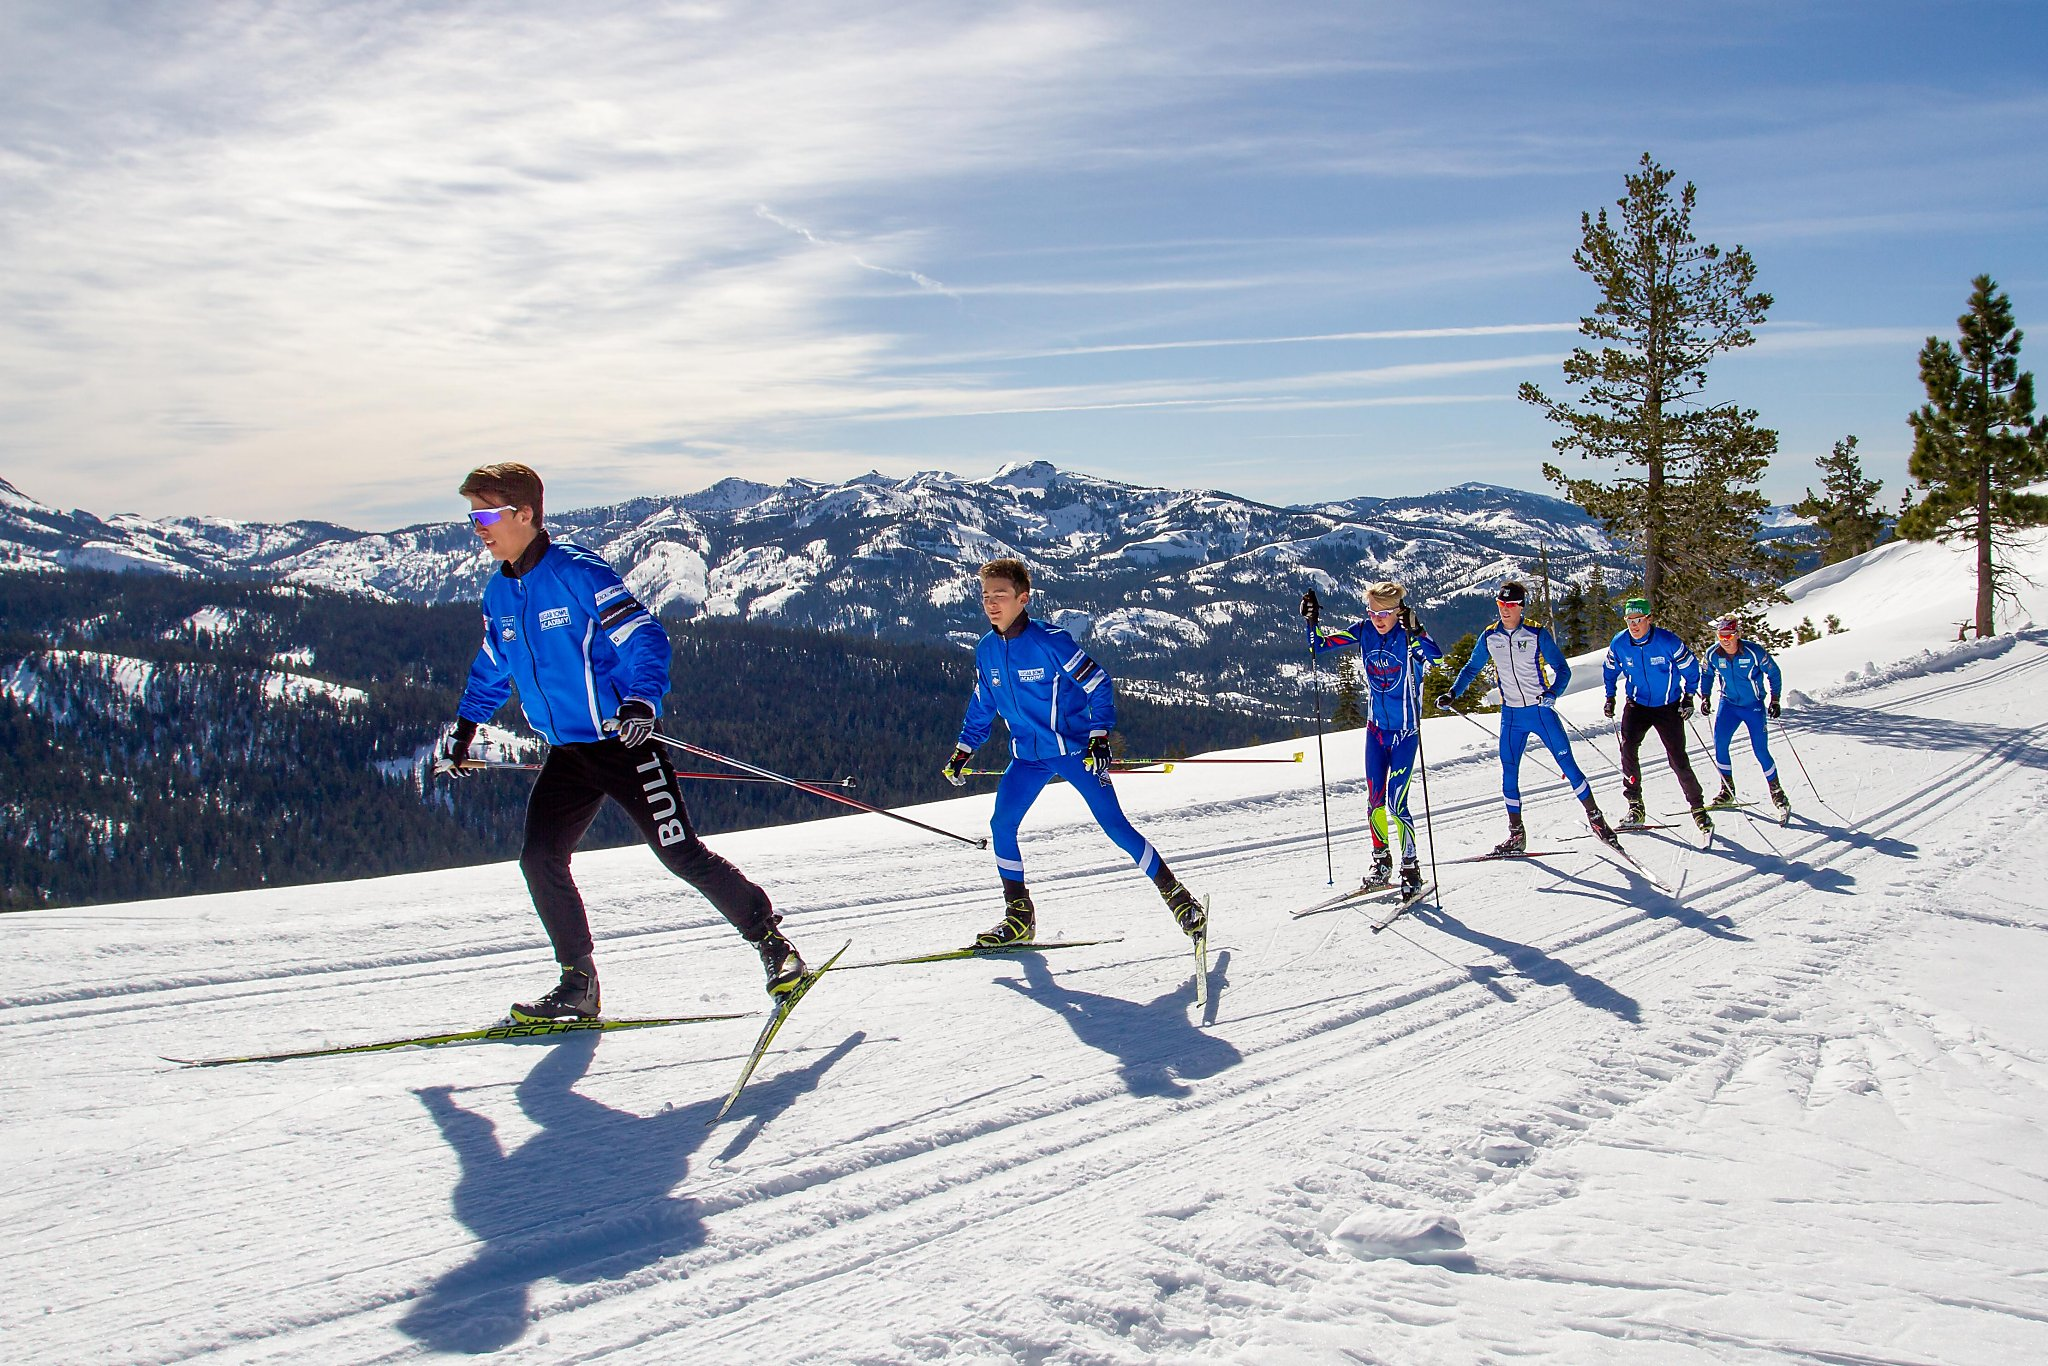 Lake tahoe a winter playground for non skiers too san francisco cross country skiing on royal gorge sciox Image collections